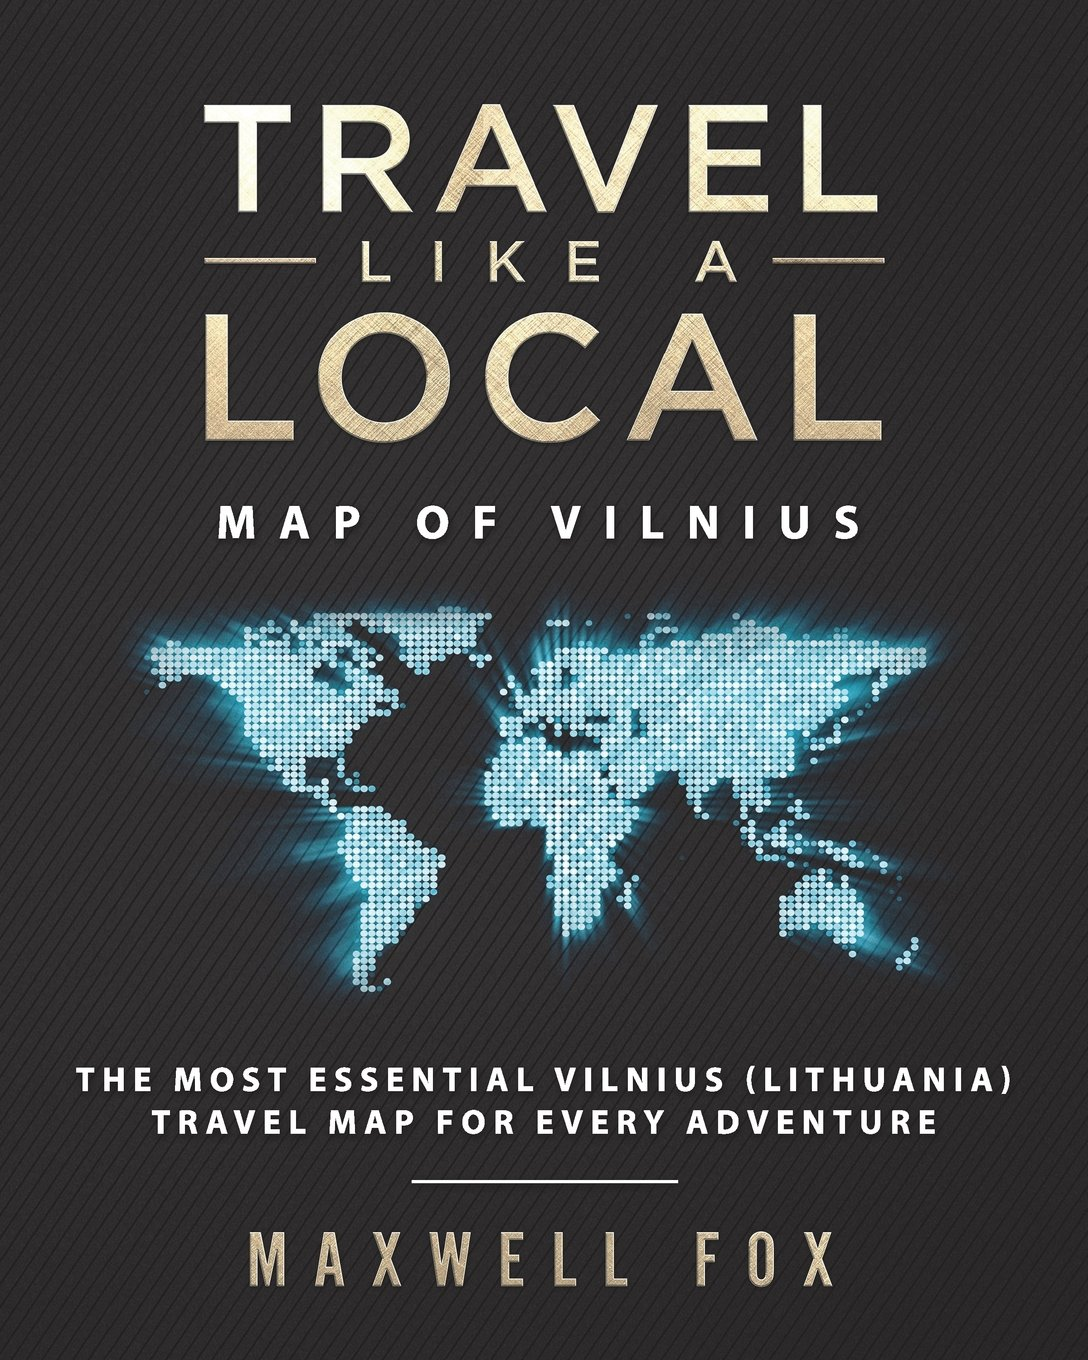 Travel Like a Local - Map of Vilnius: The Most Essential Vilnius (Lithuania) Travel Map for Every Adventure